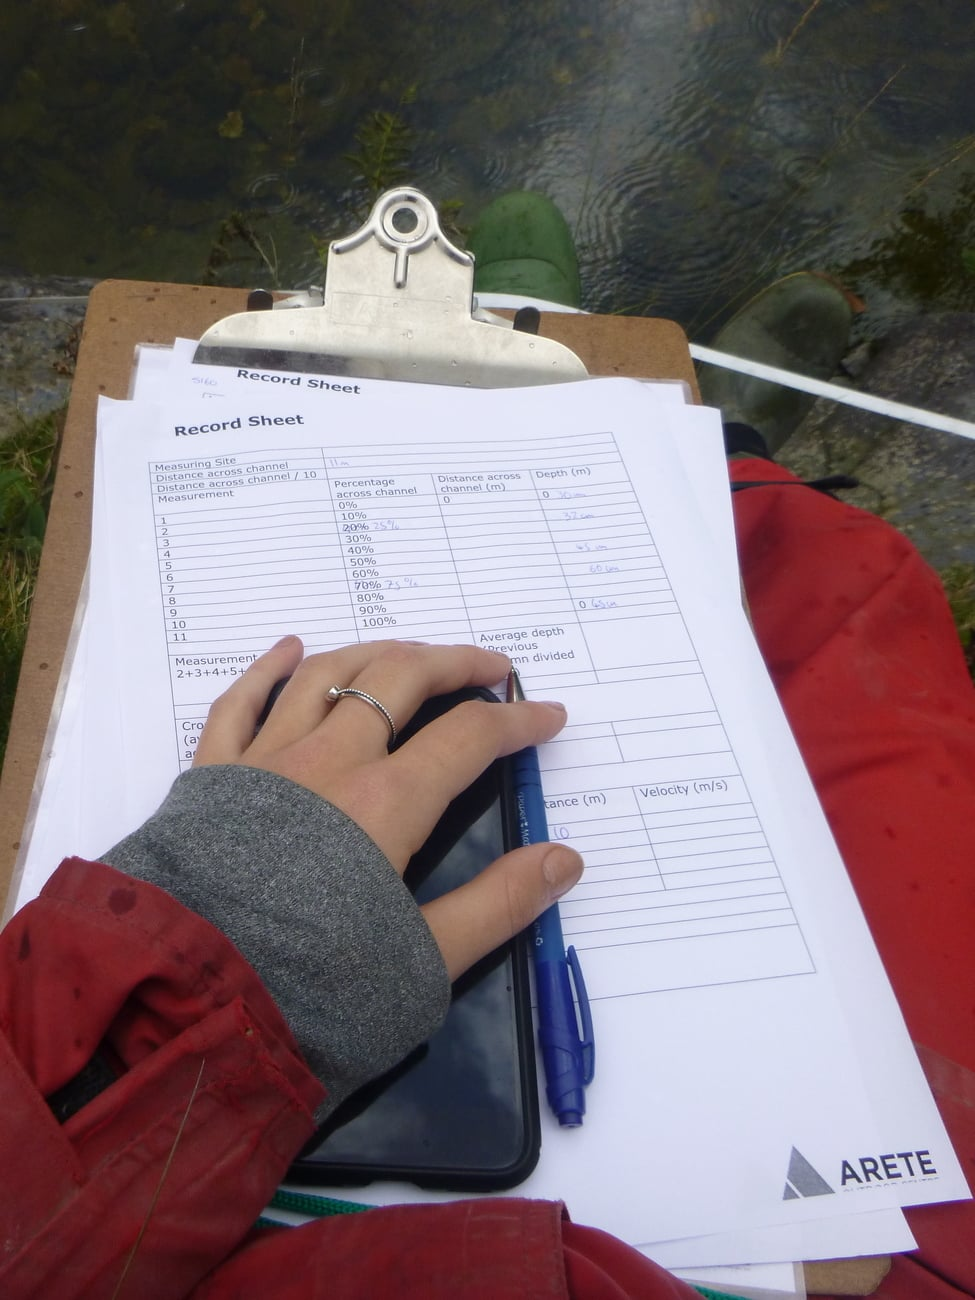 Clipboard, hand noting field work river data